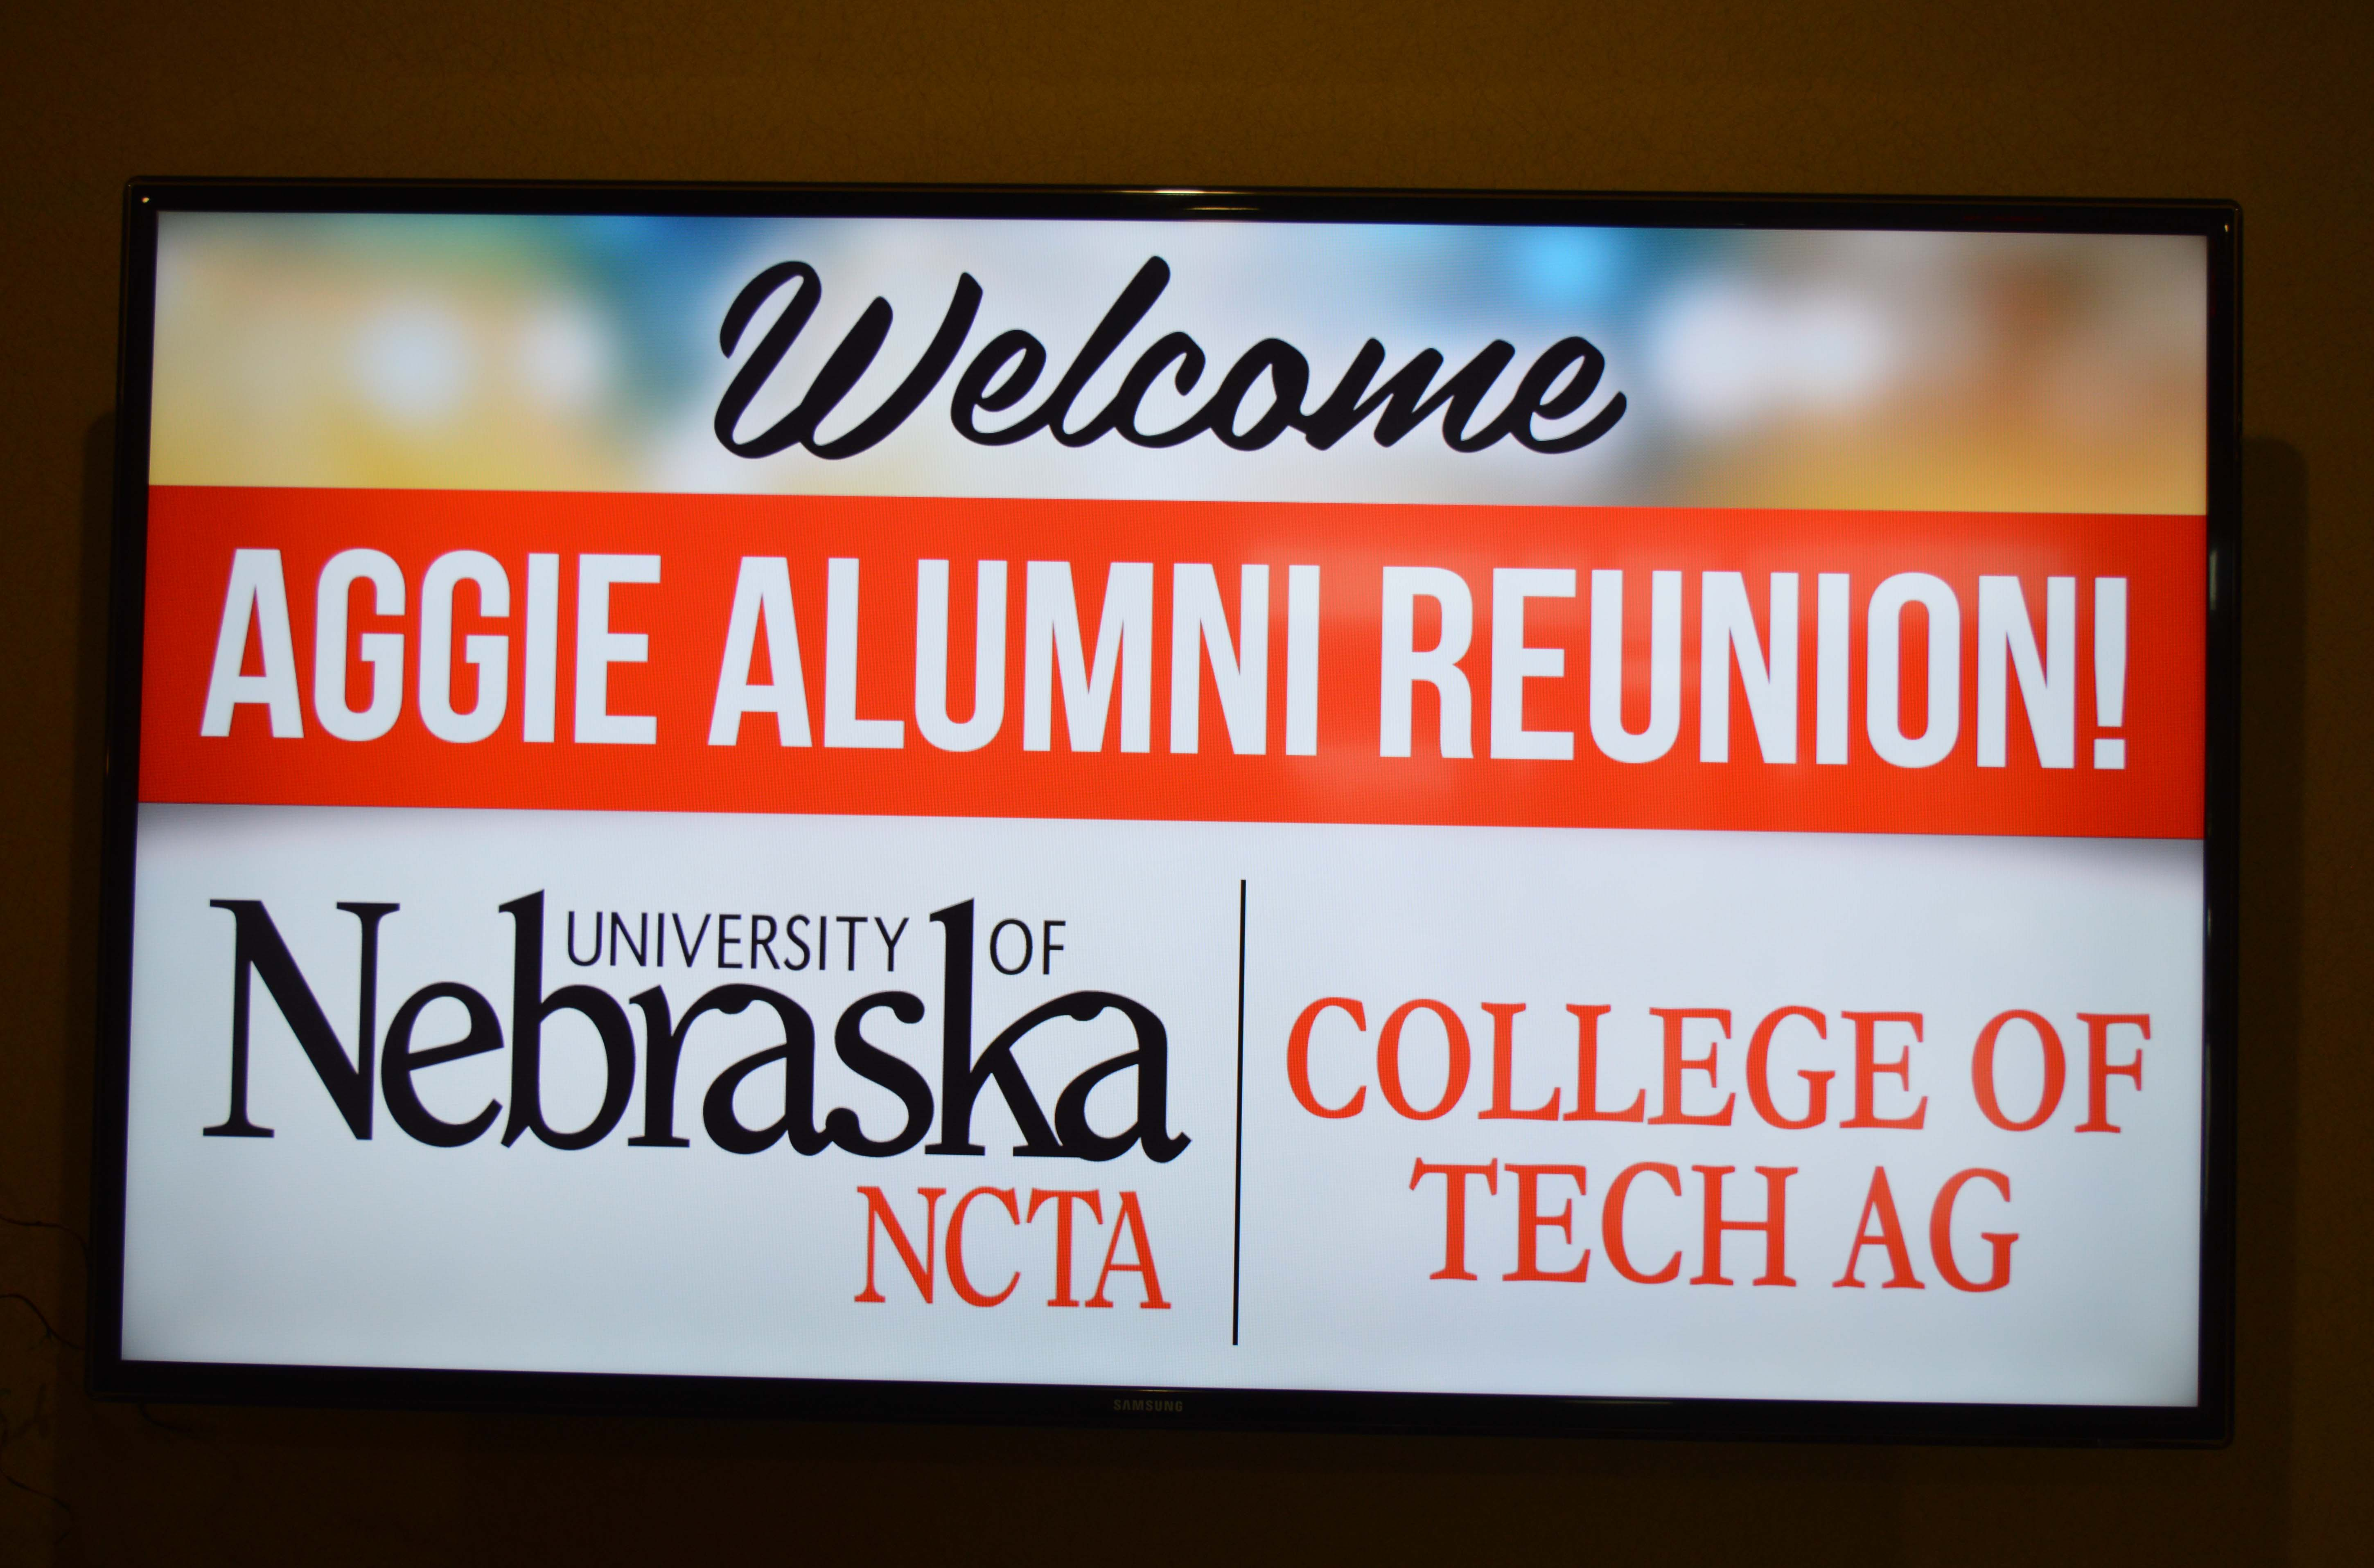 The Aggie Alumni Association represents alumni from the Nebraska College of Technical Agriculture and its predecessor college, the University of Nebraska School of Technical Agriculture. The group will meet on June 26, 2021 in Curtis.